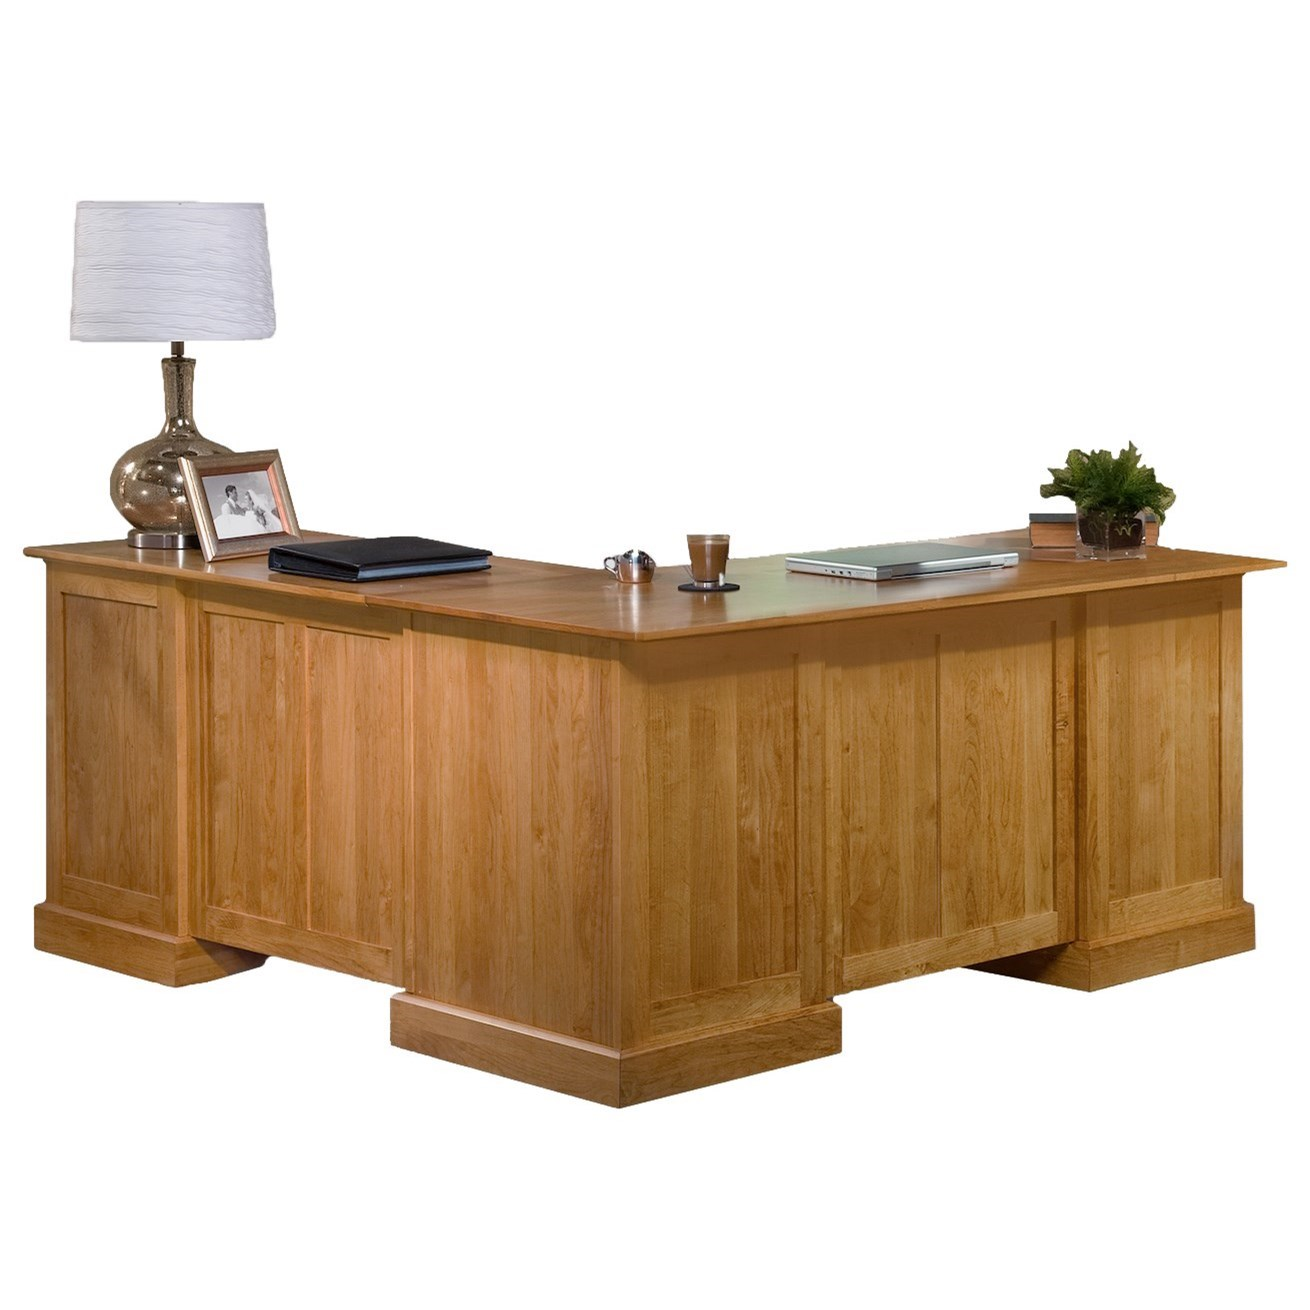 Executive Home Office L Shape Desk and Return by Amish Traditions at Sprintz Furniture